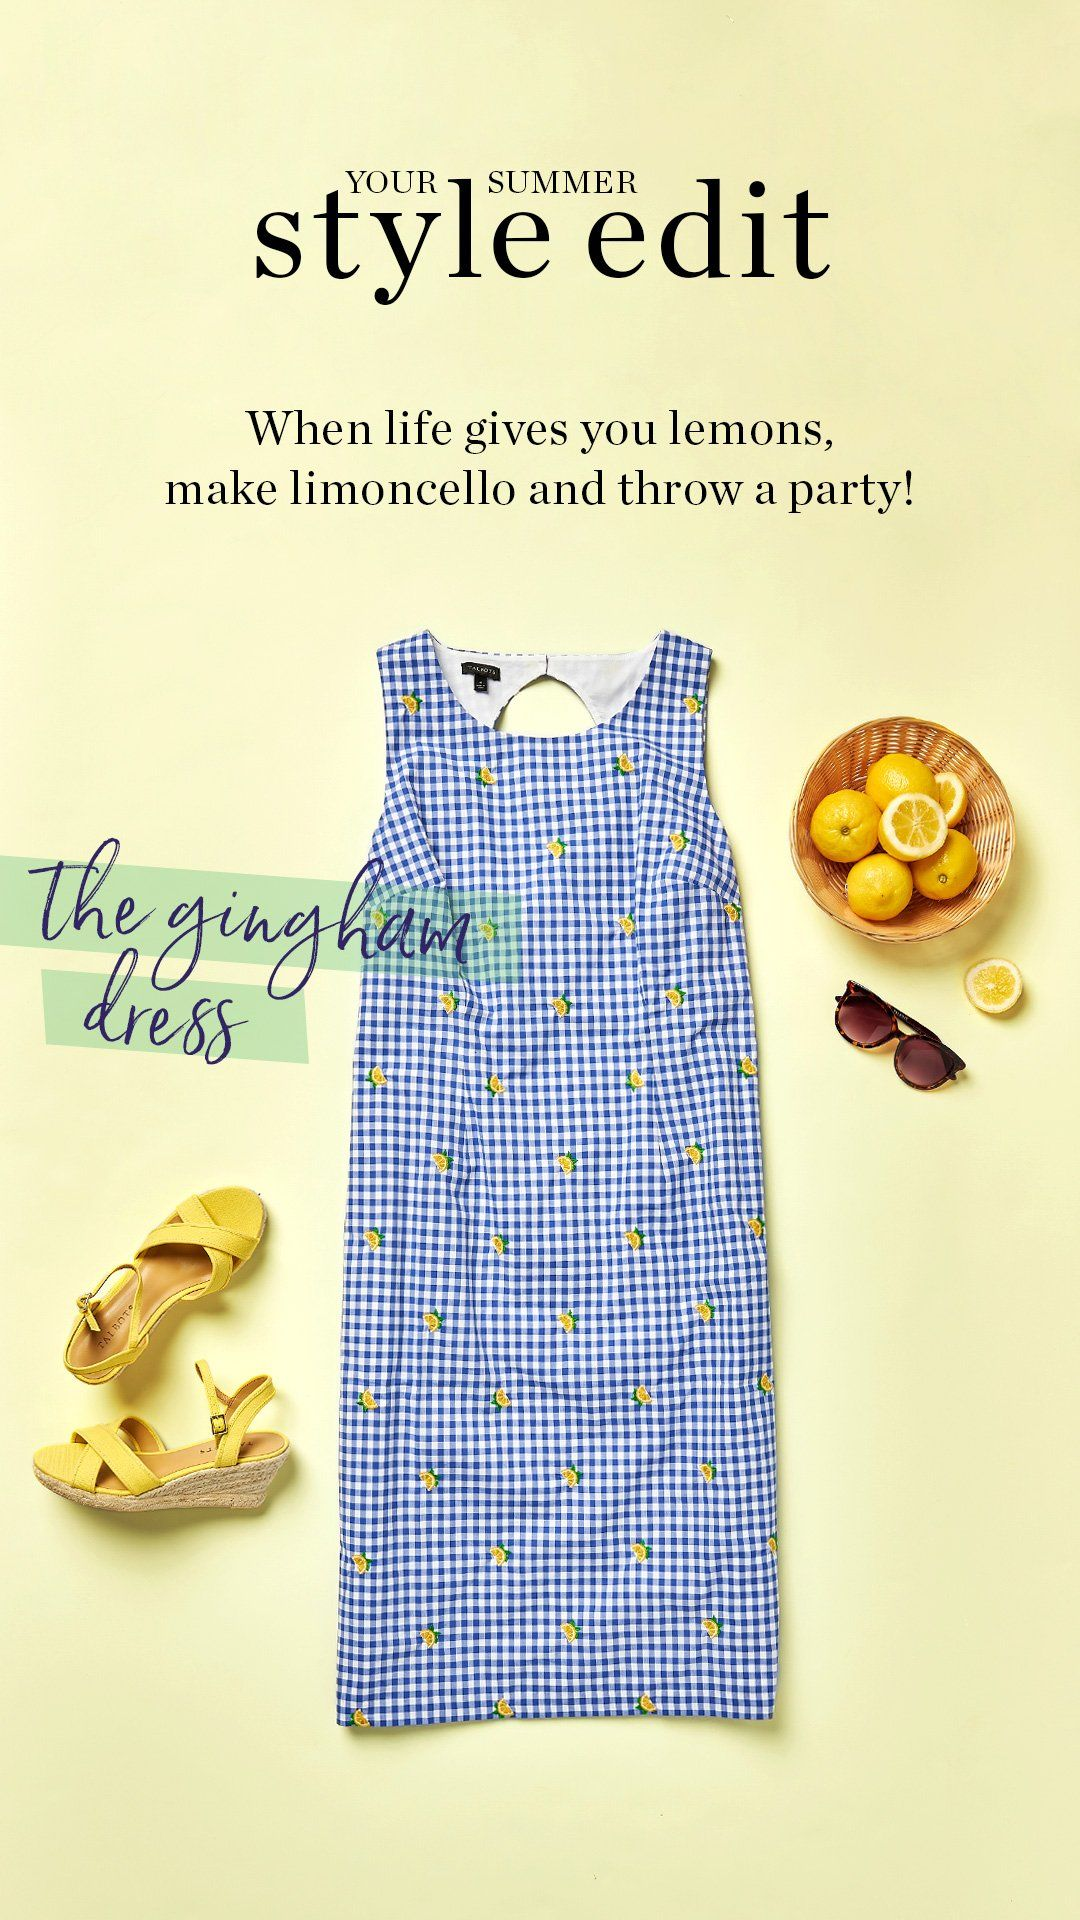 Embroidered Lemons Add A Whimsical Touch To This Classic Gingham Shift Dress Wear It With Your Hair Up To Show Off The Pre Shift Dress Dresses Talbots Outfits [ 1920 x 1080 Pixel ]